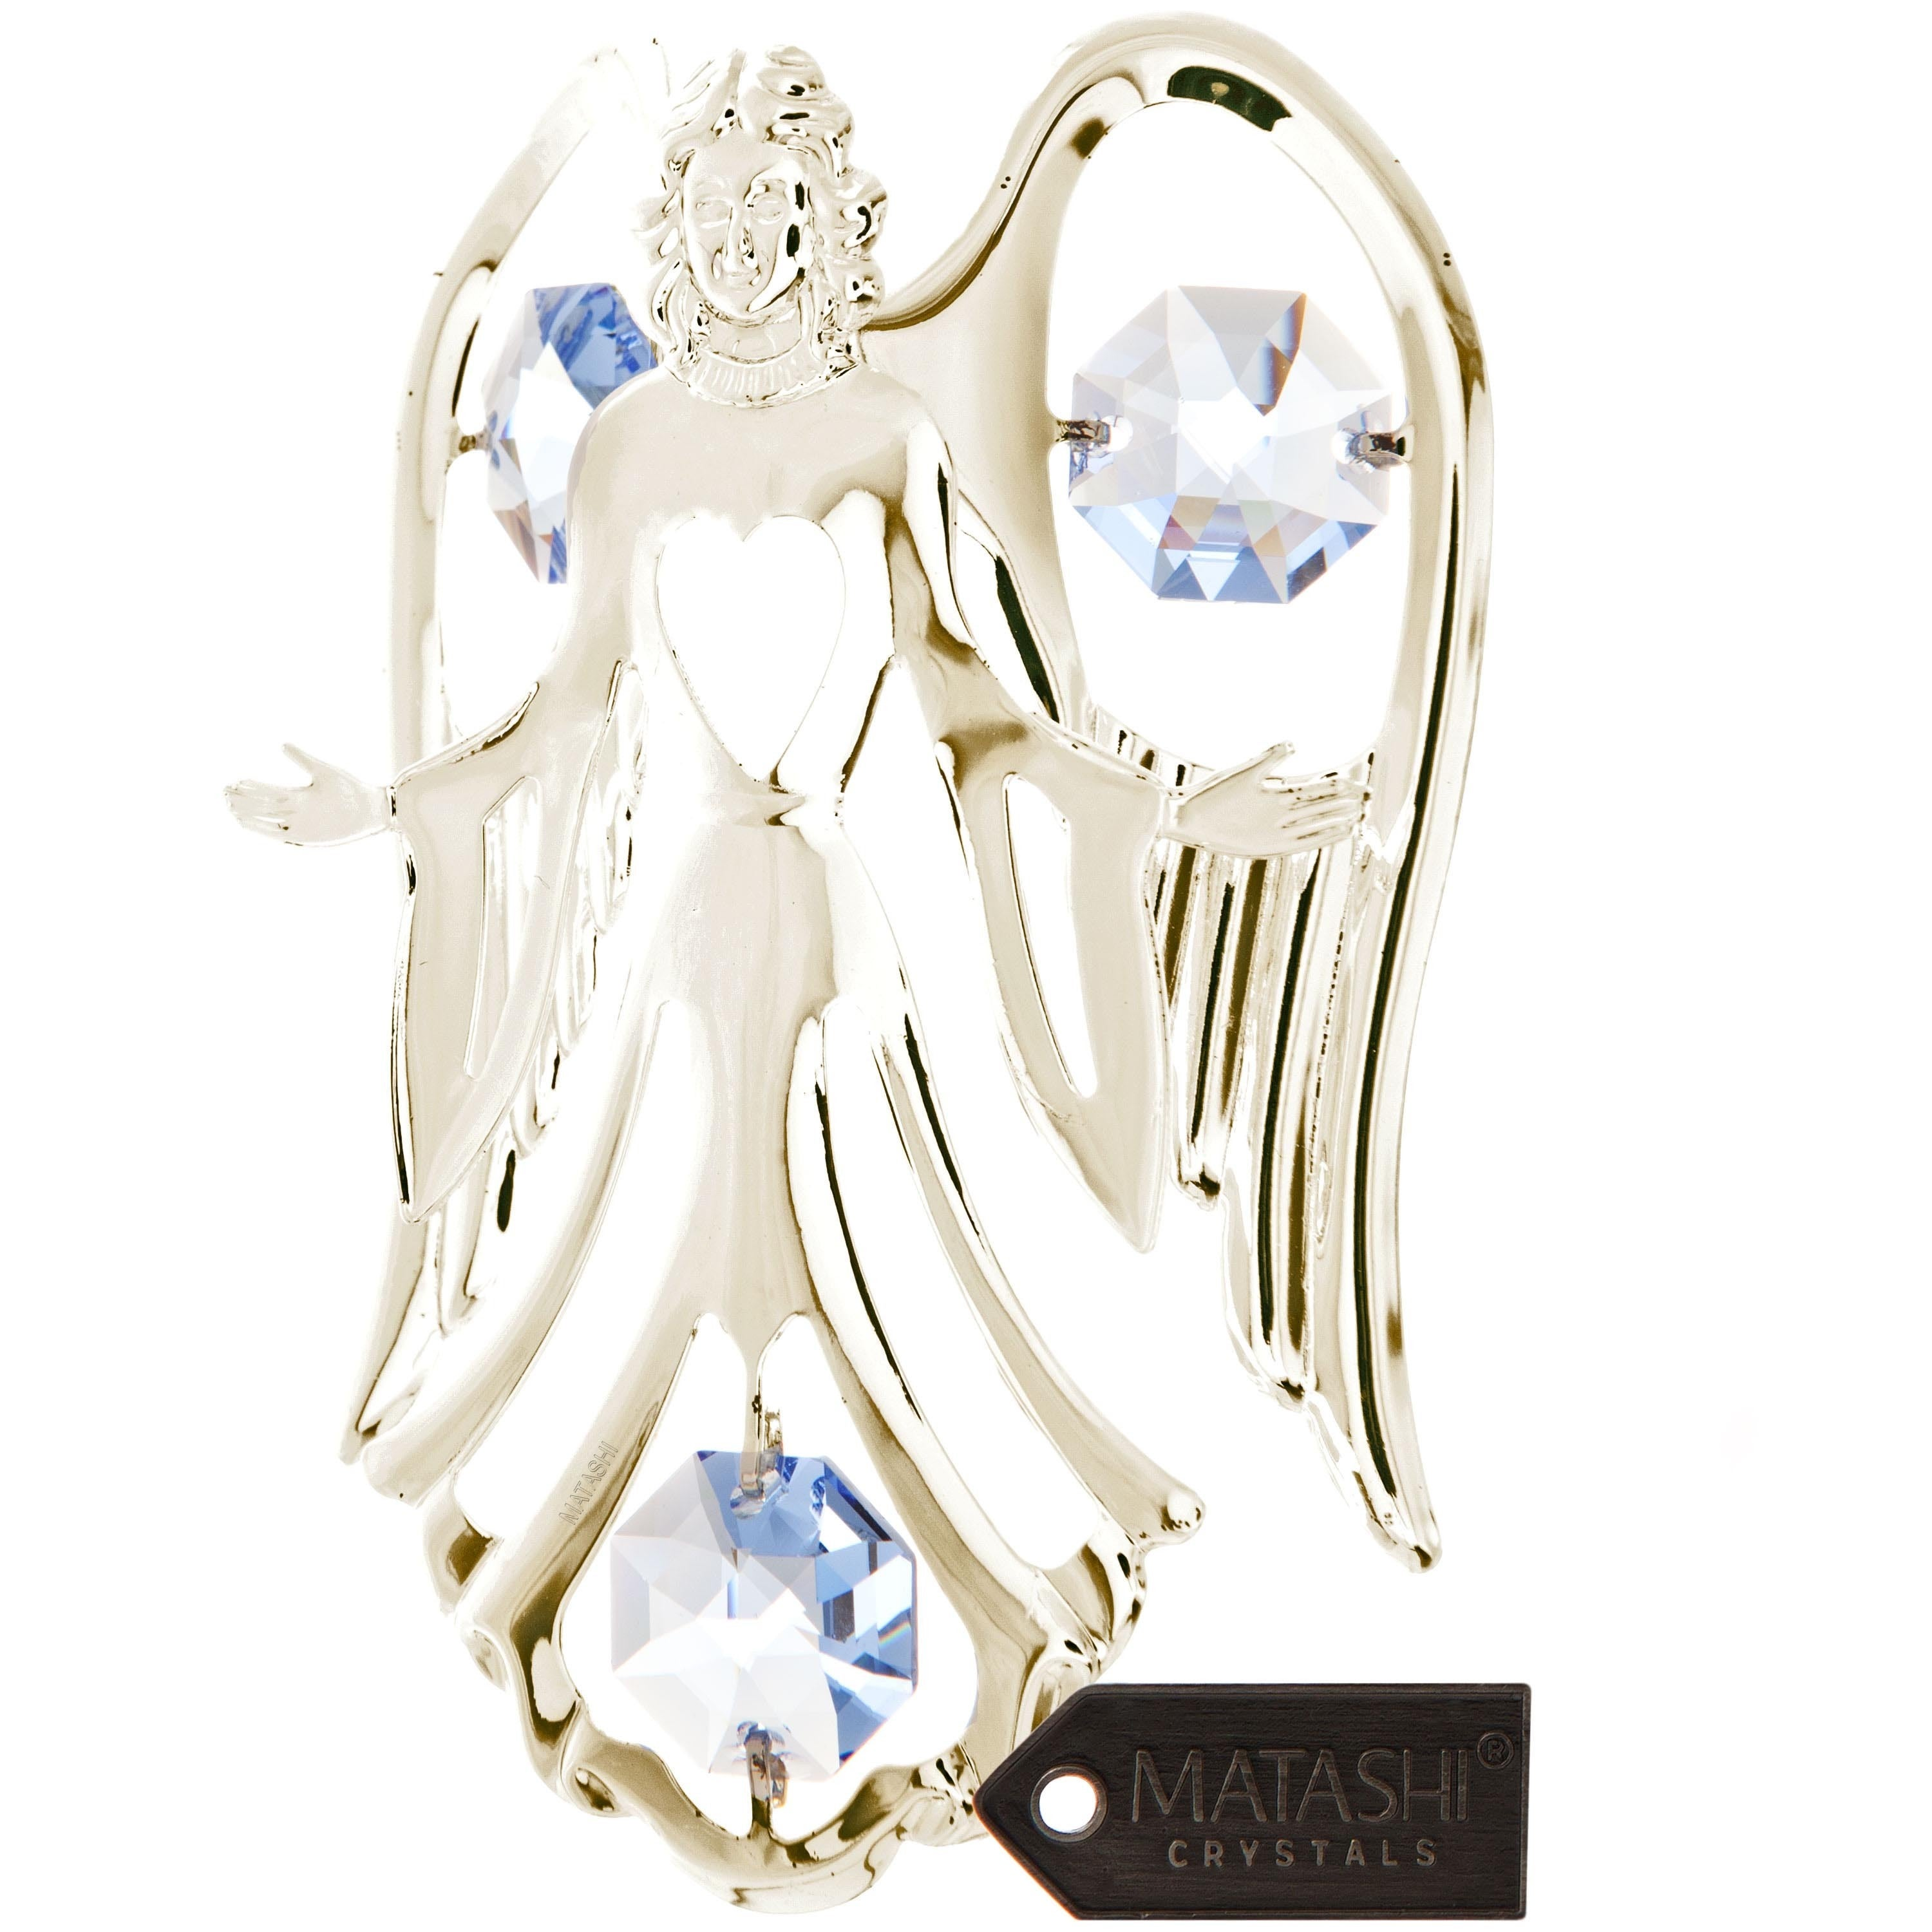 Matashi Silver Plated Highly Polished Stunning Open Arms ...